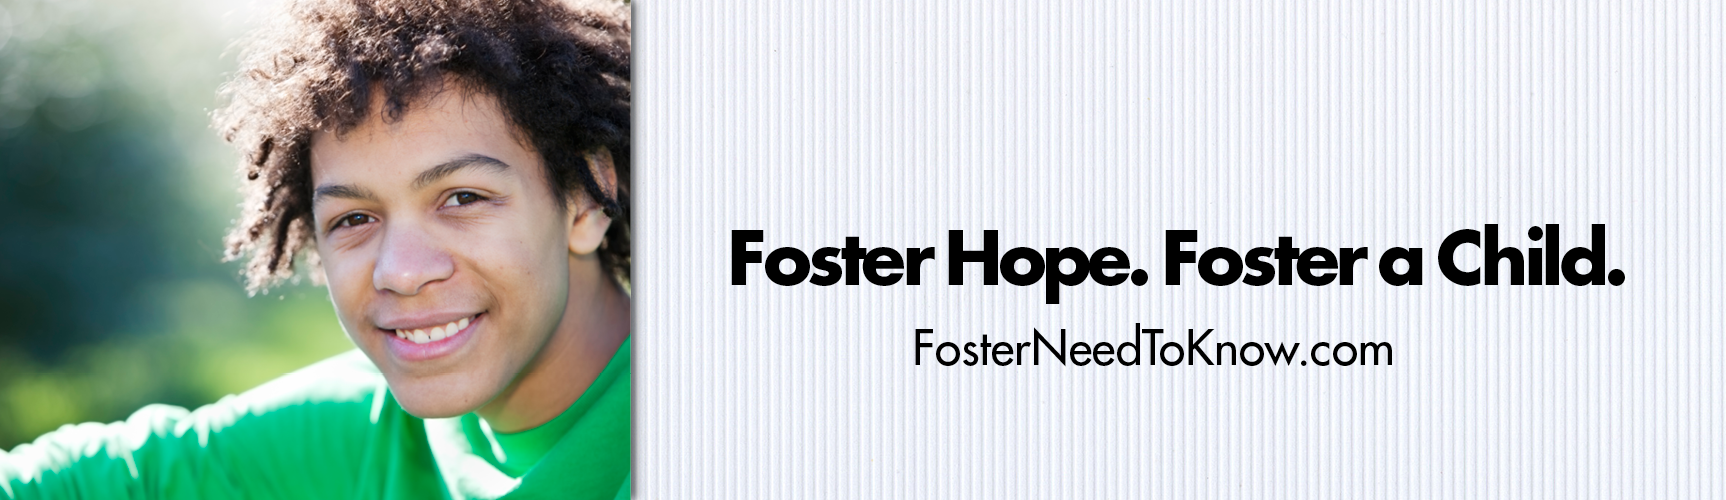 Foster Hope. Foster a Child.